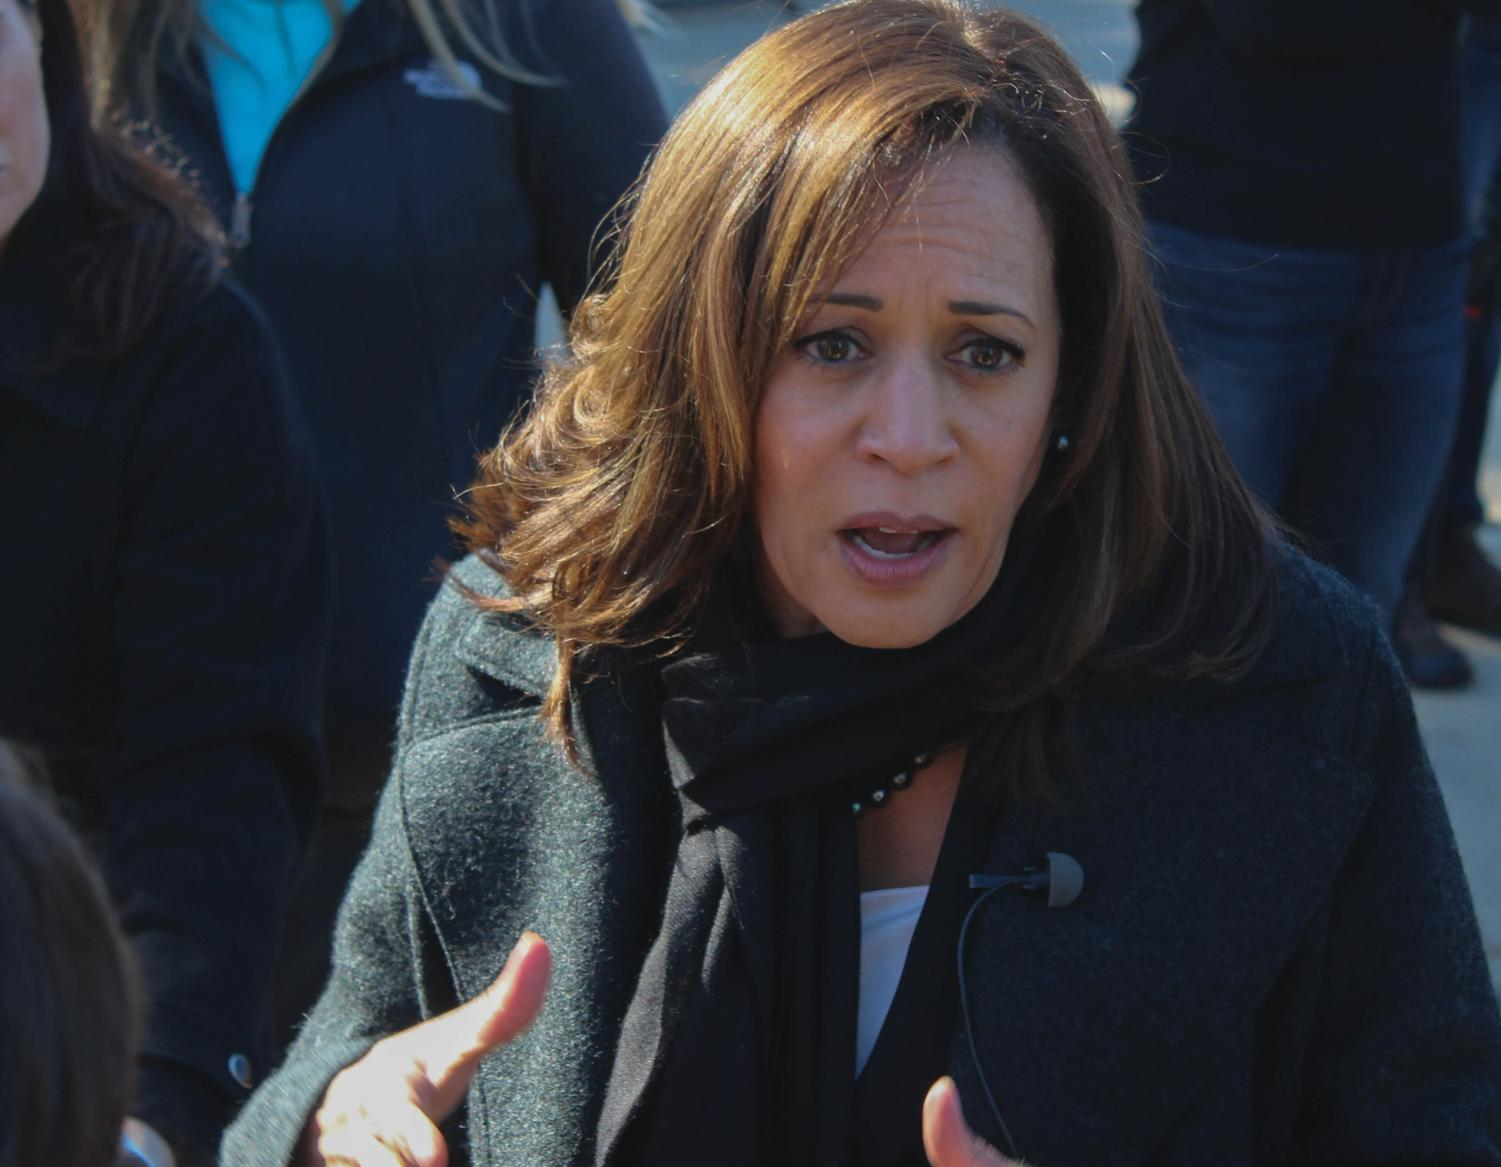 Senator Kamala Harris visited UNI on Tuesday to encourage students to vote early in the 2018 midterm elections.